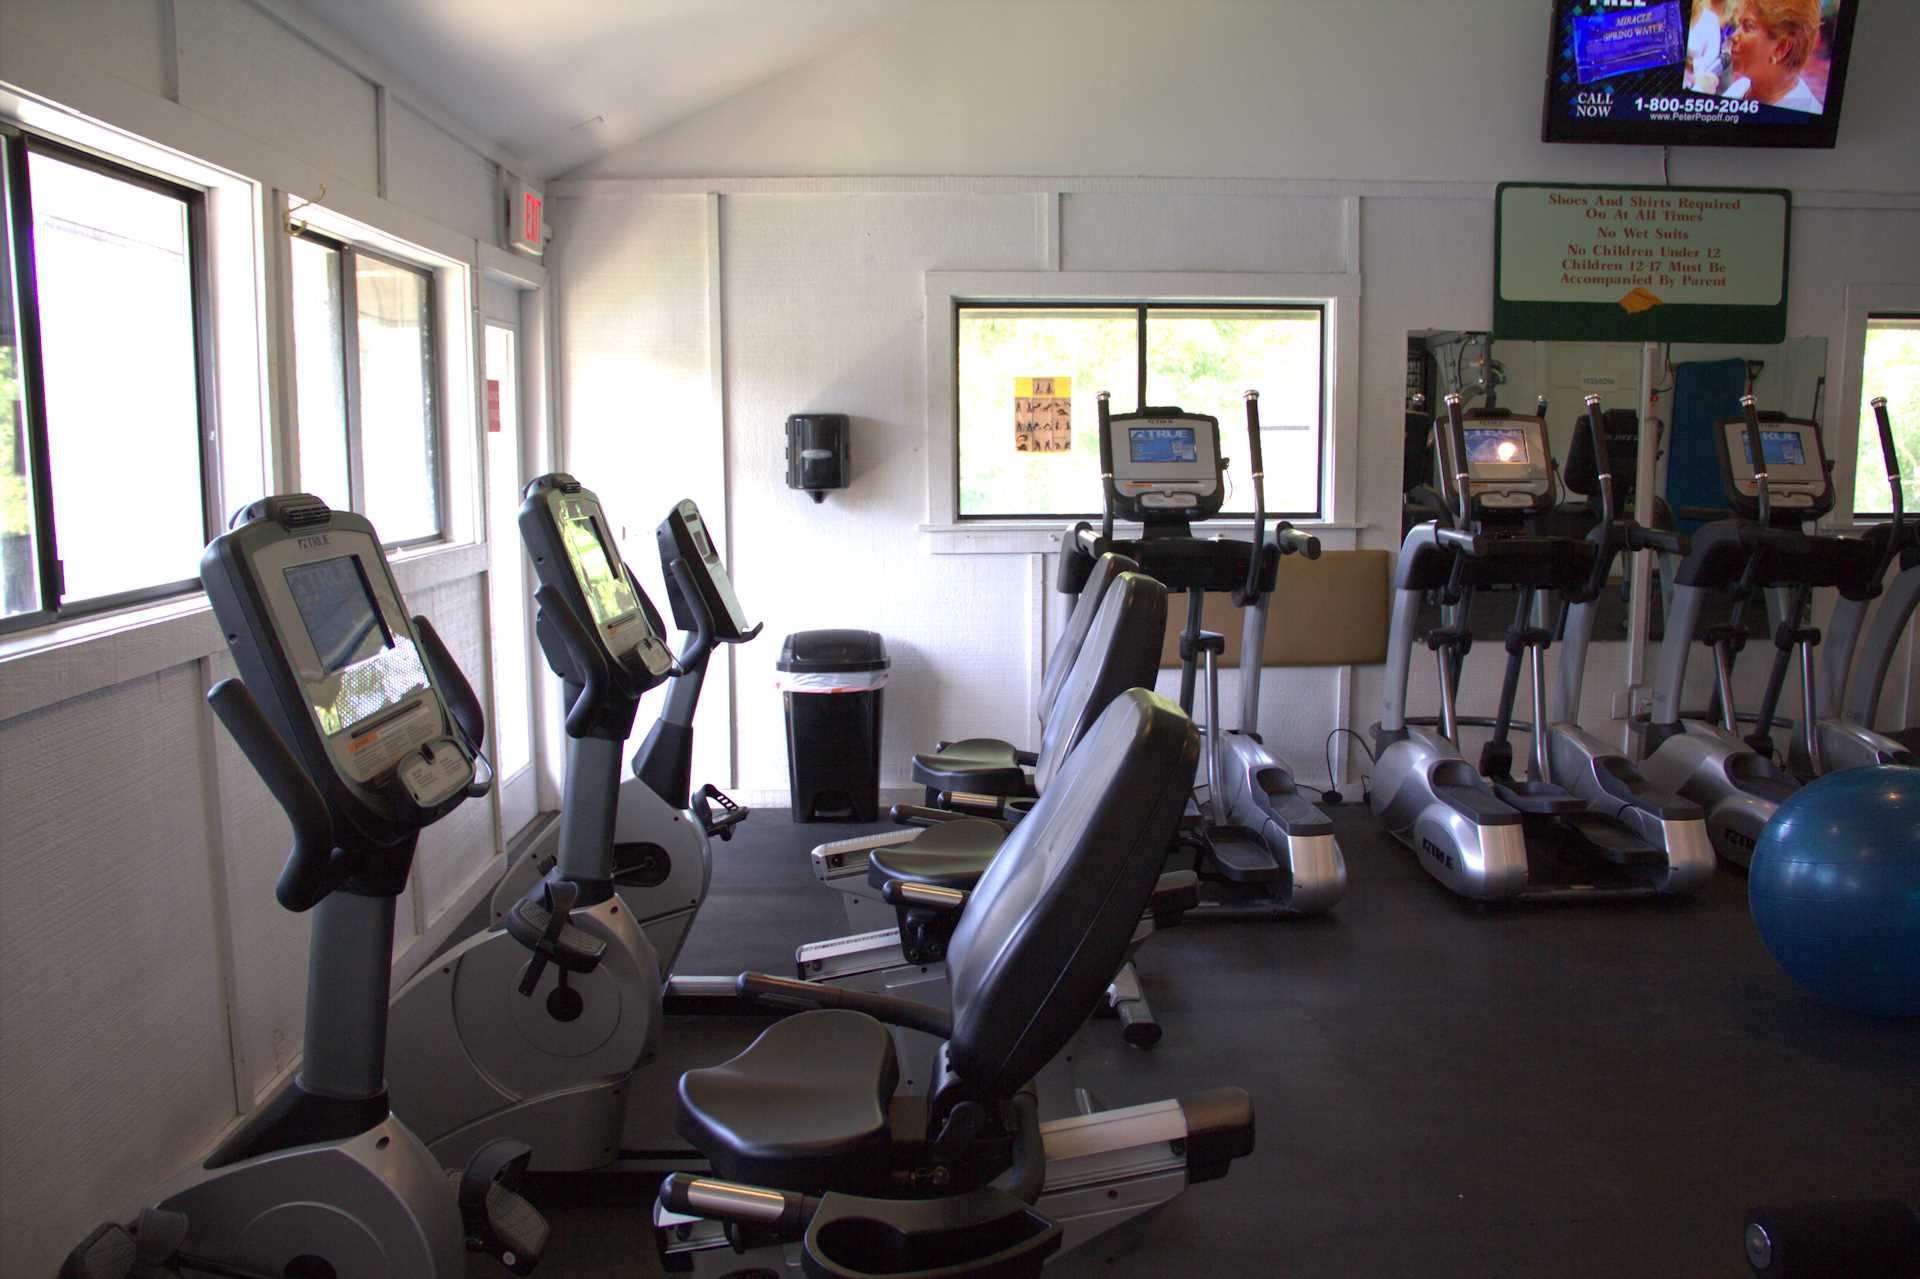 the exercise room has upgraded equipment